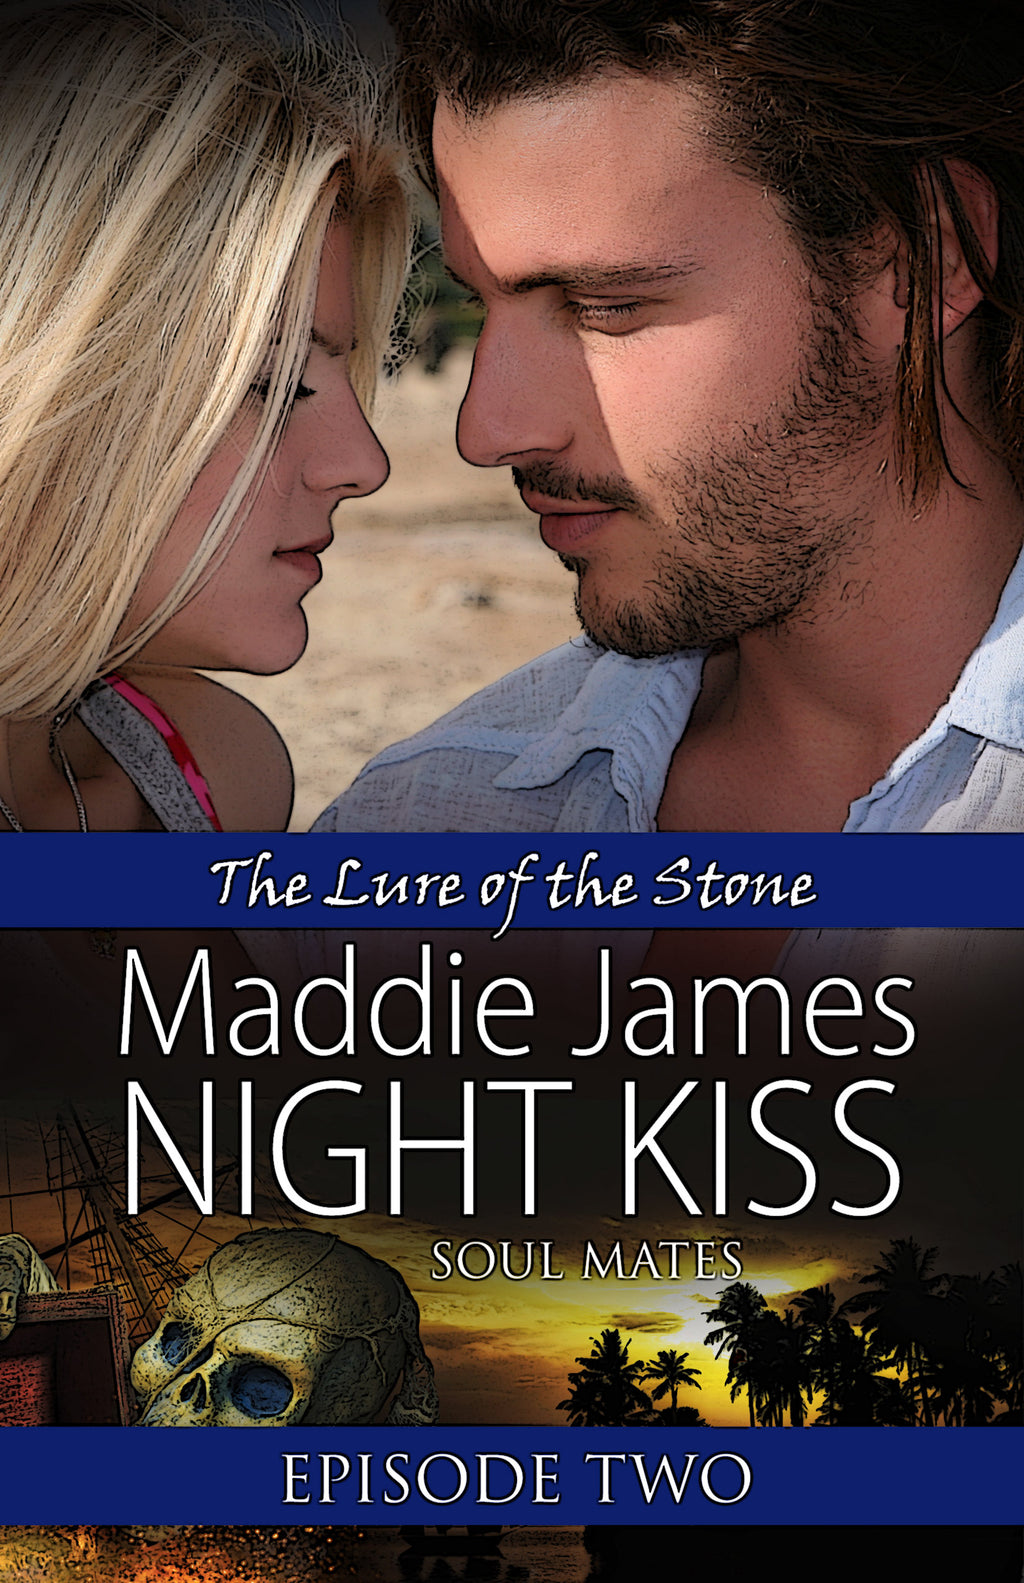 Night Kiss Episode II - The Lure of the Stone